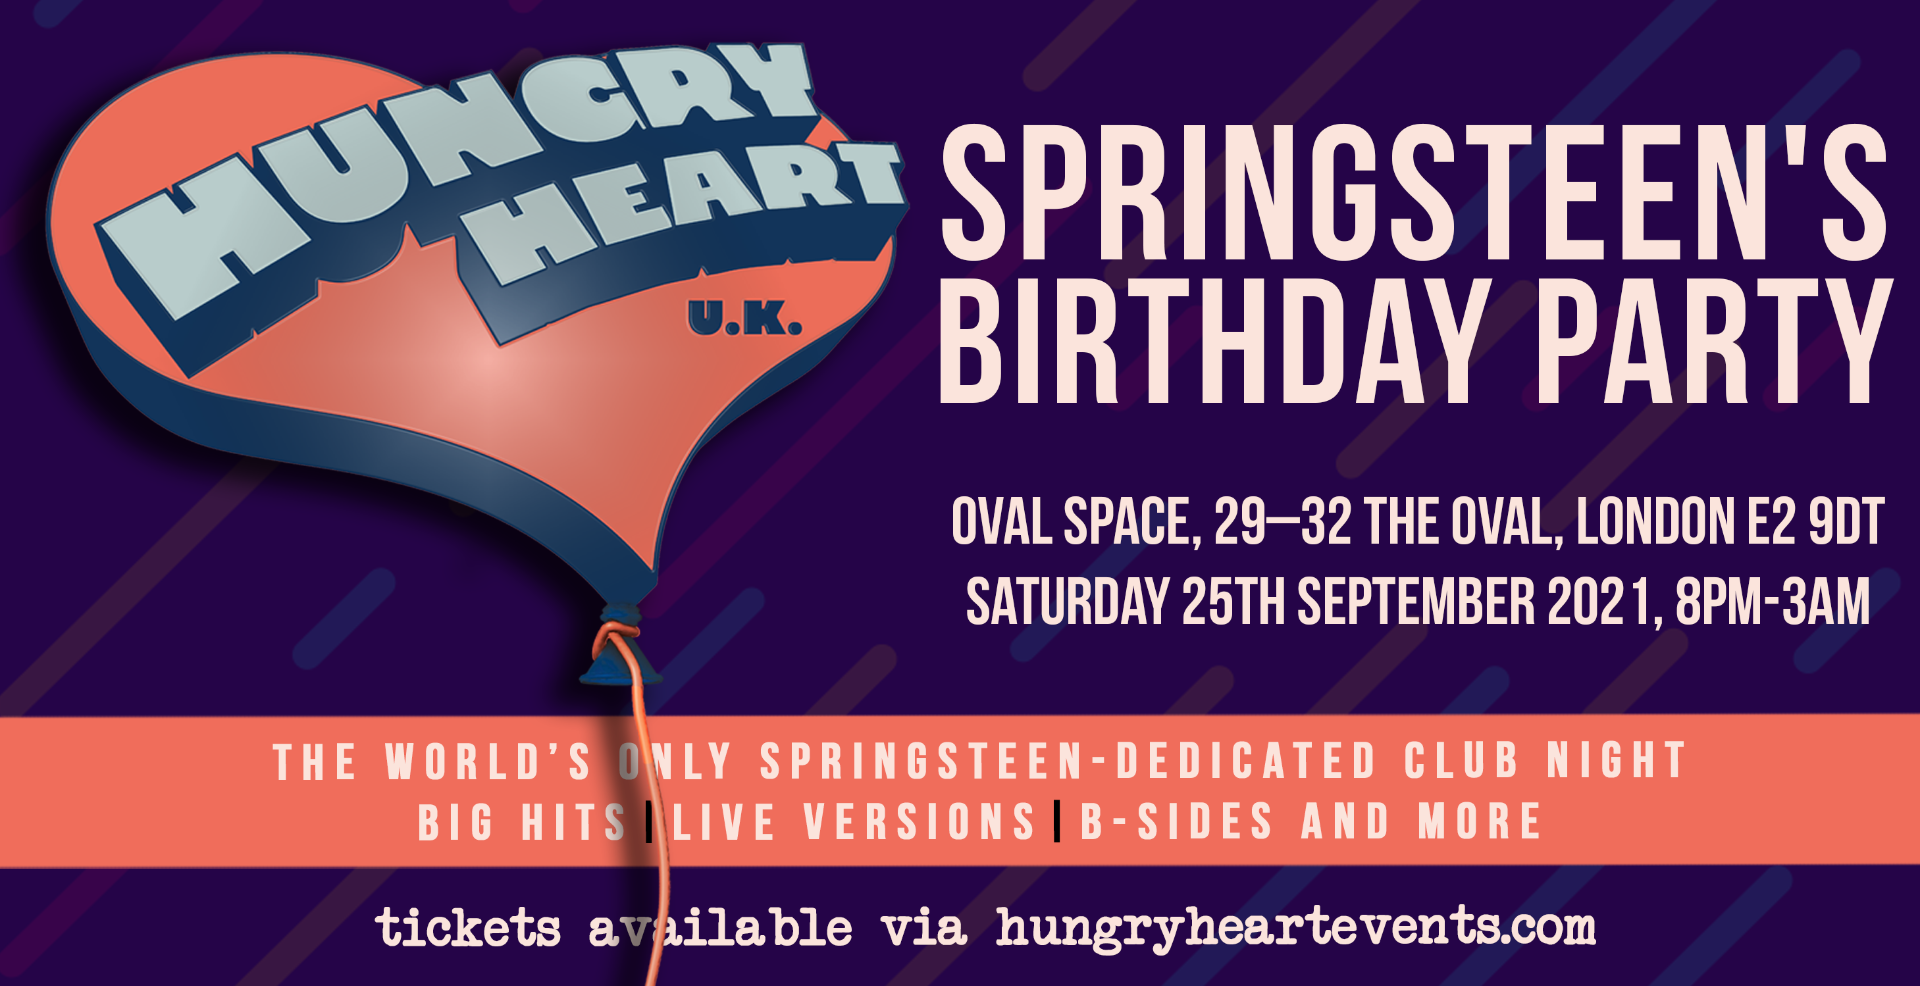 HUNGRY HEART- SPRINGSTEEN'S BIRTHDAY!